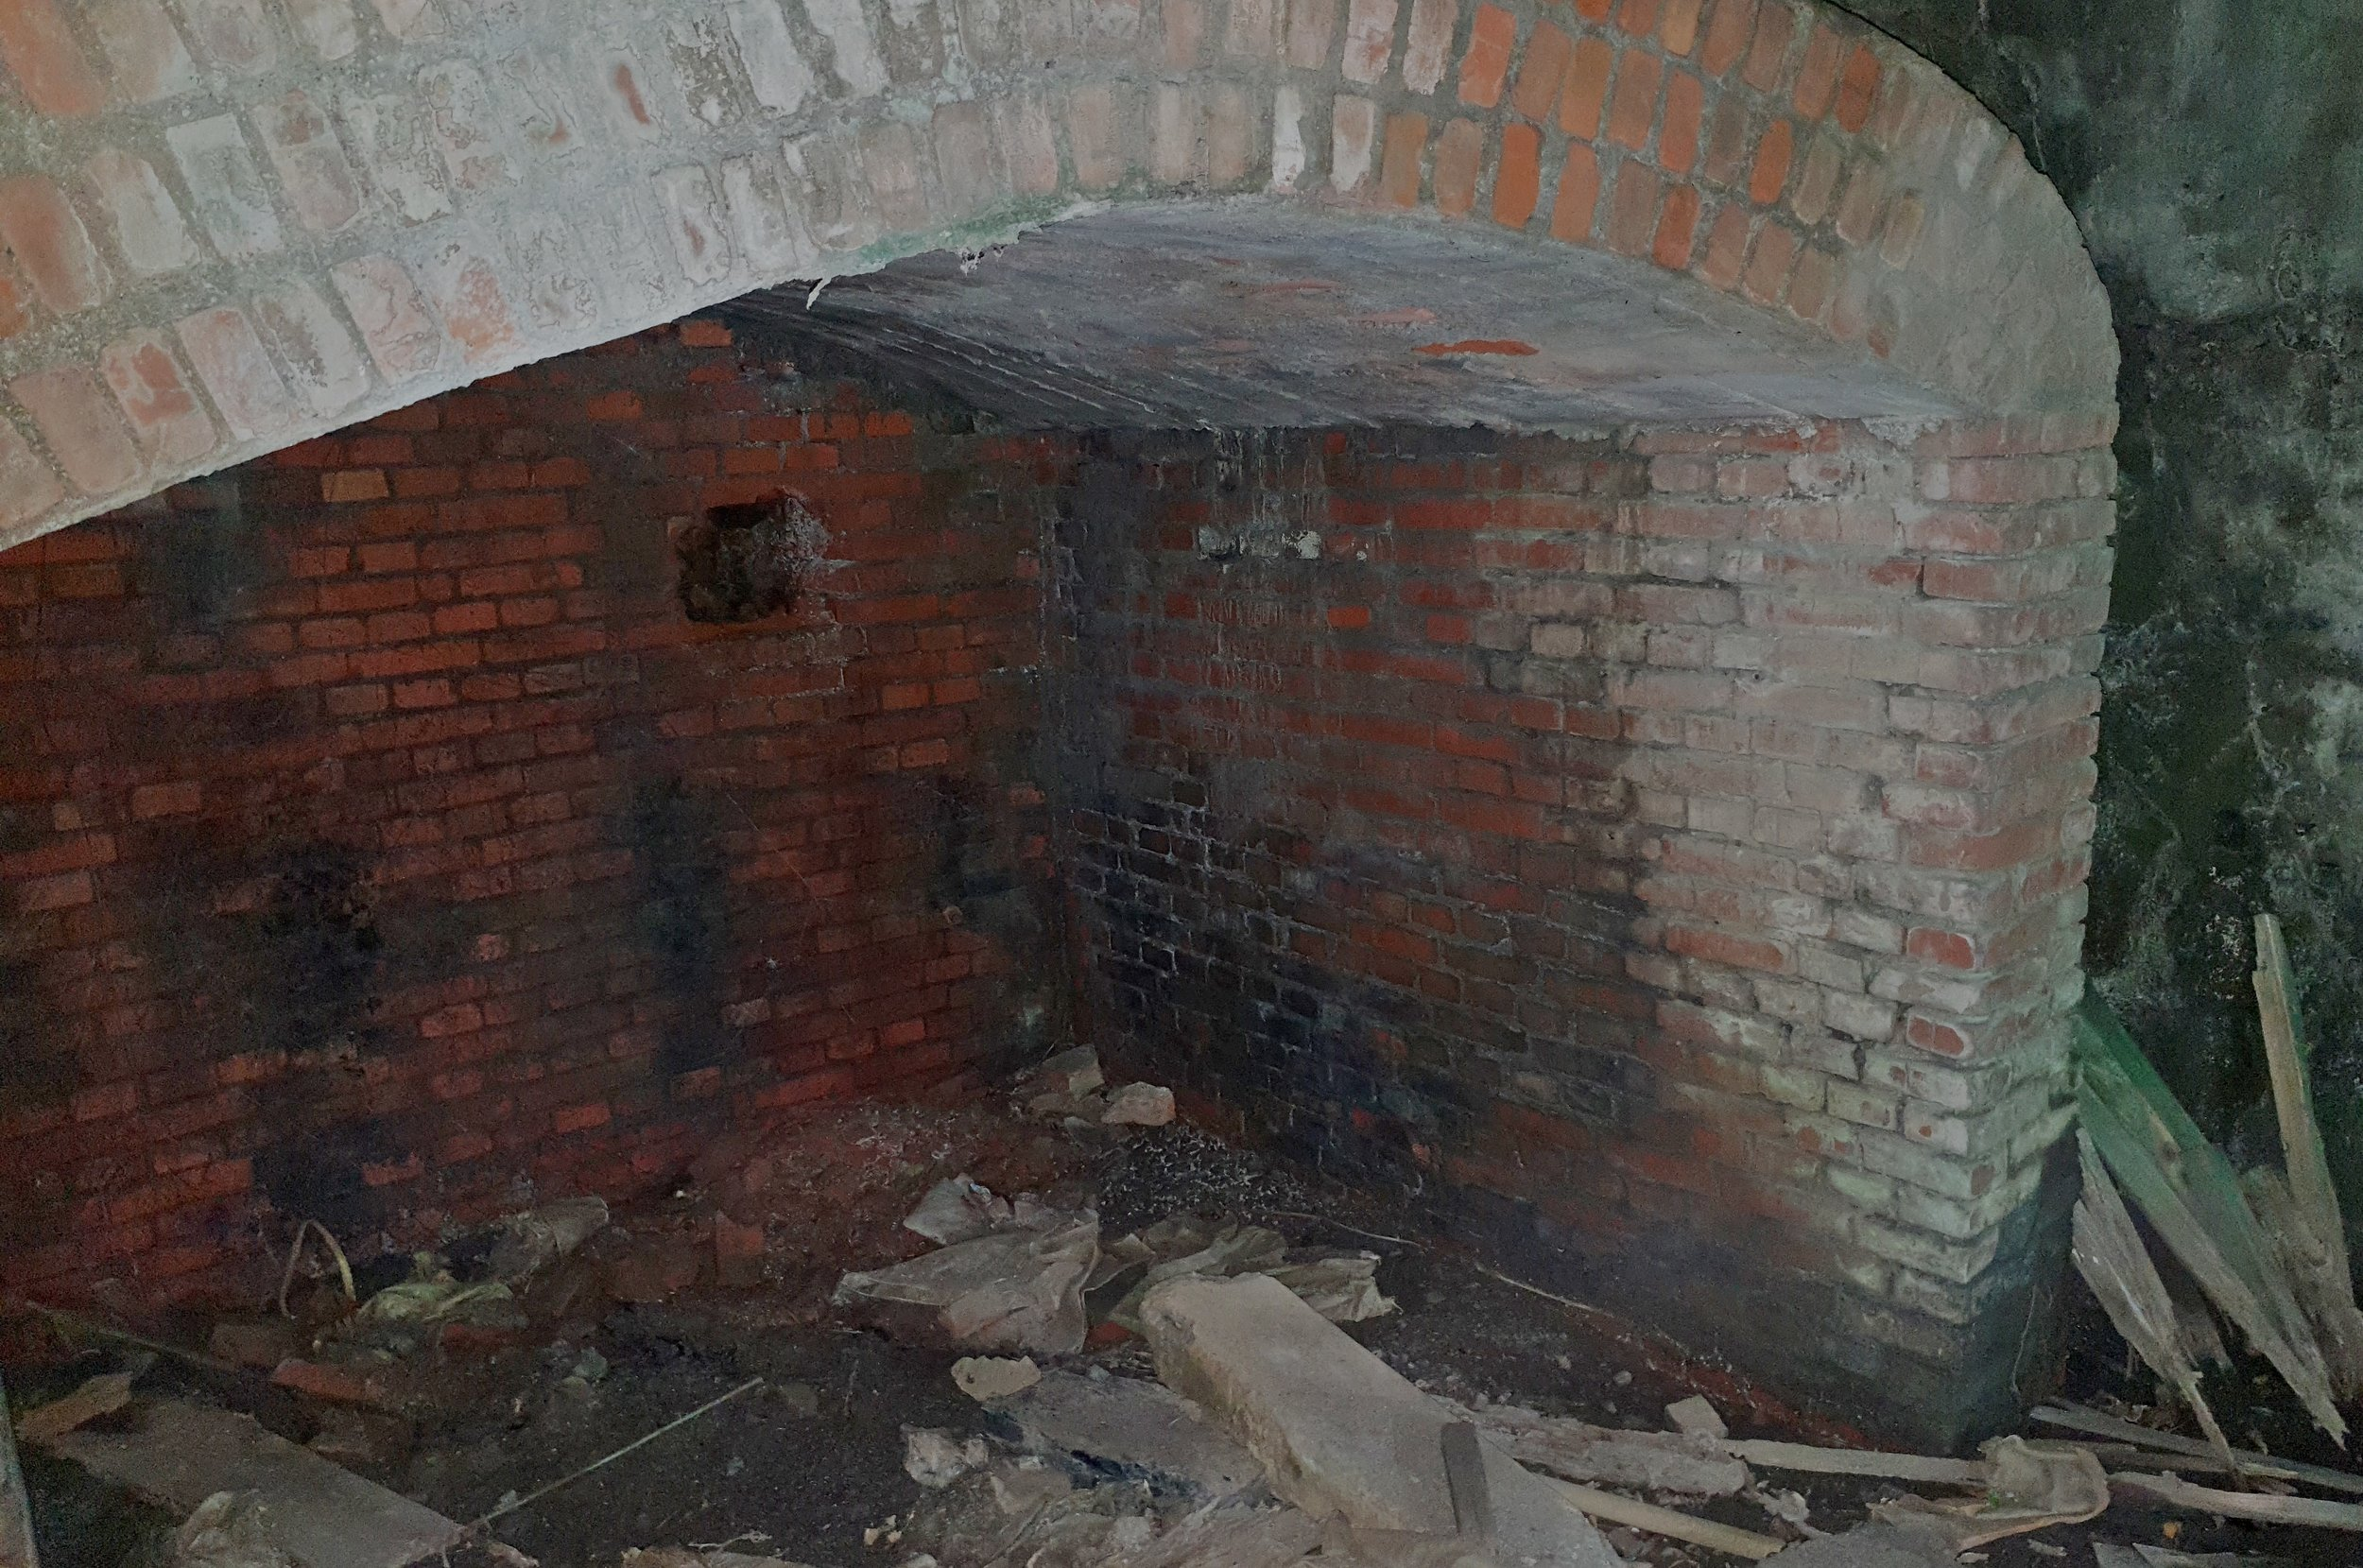 One bricked up tunnel. Not sure what these were for really as both have rock walls behind the bricks